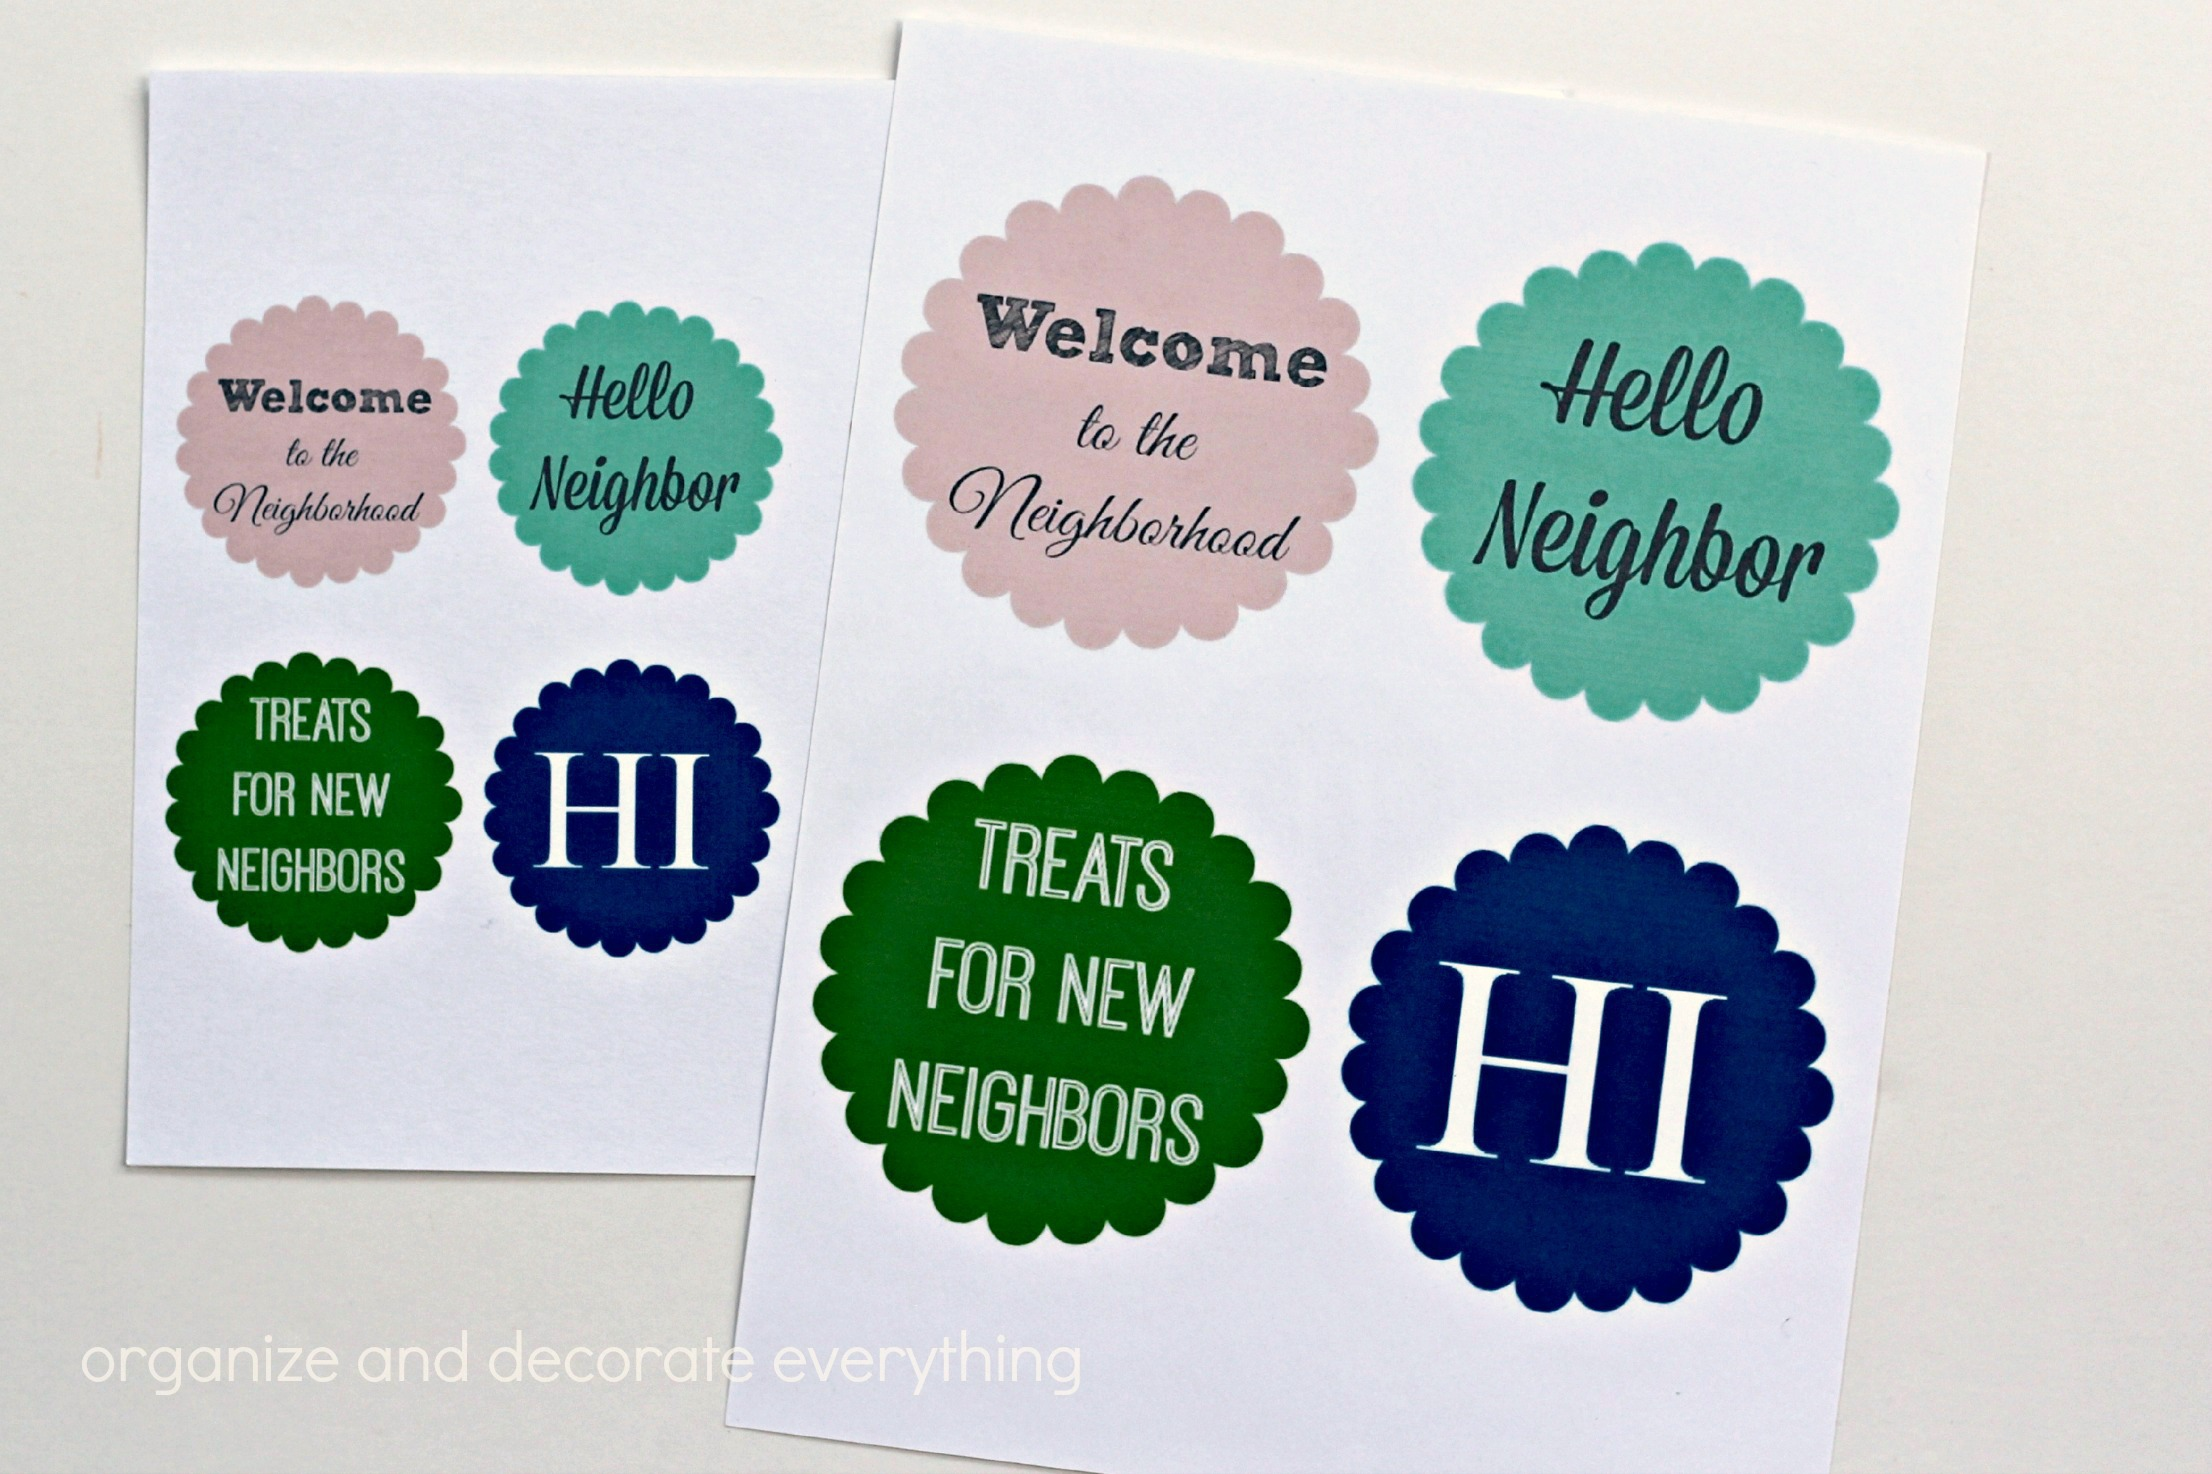 image about Welcome to the Neighborhood Printable named Neighbor Reward Programs with Printable Tags - Prepare and